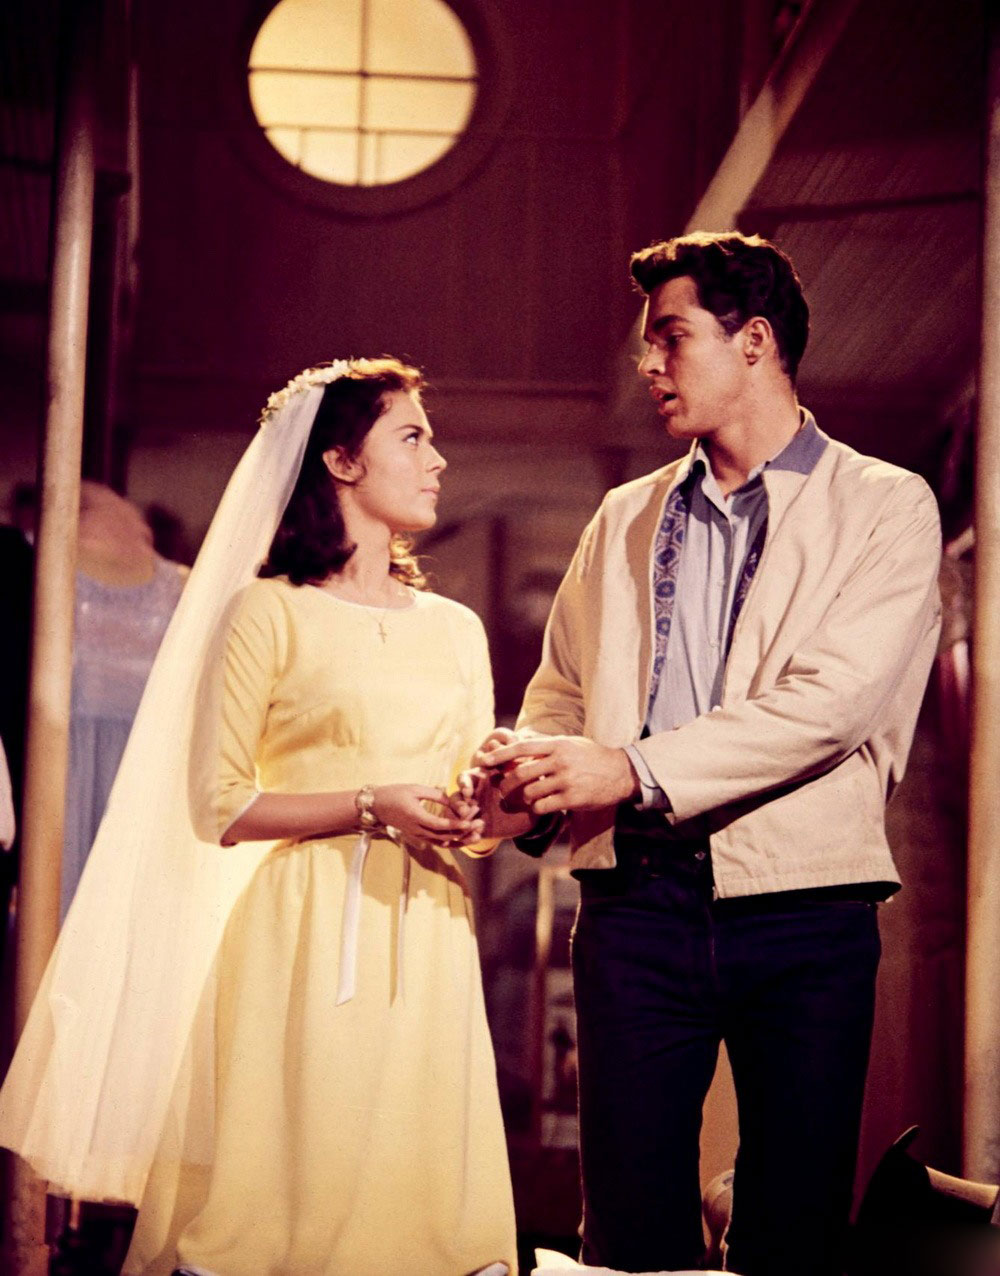 a comparison of romeo and juliet and the premiere of west side story on broadway in 1957 September 26 marks the 50th anniversary of west side story's broadway premiere of shakespeare's romeo and juliet set on the west side of 1957, musical.